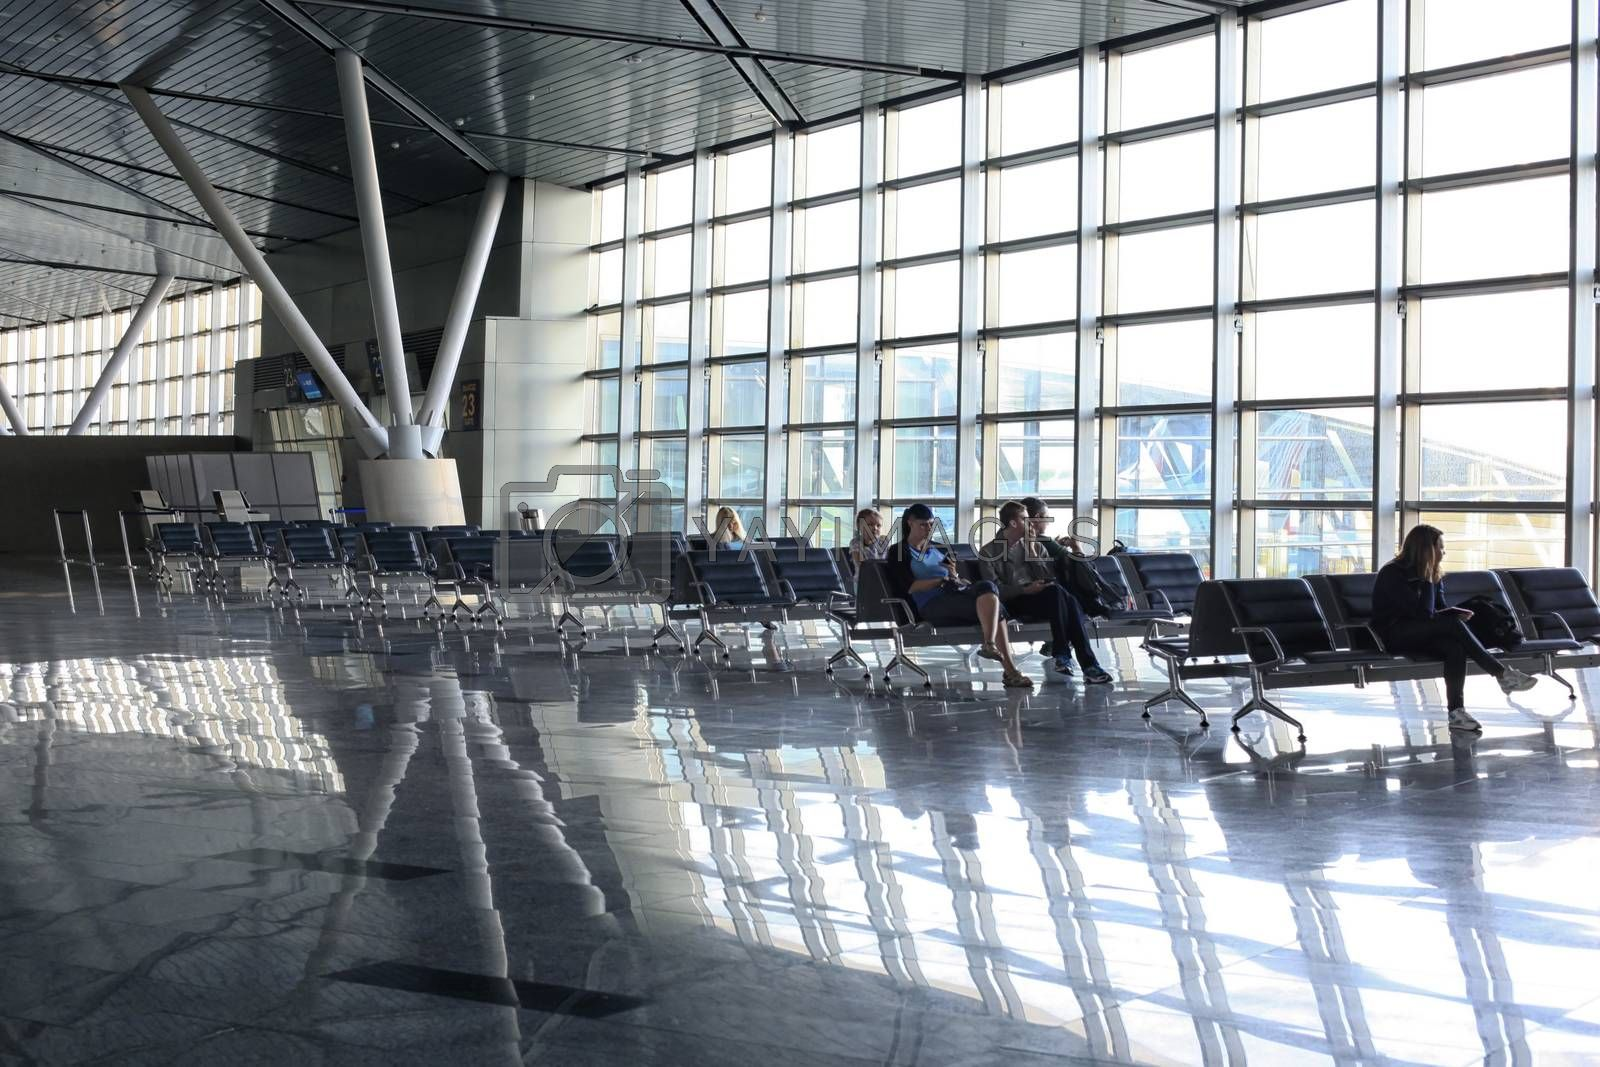 Moscow, Russia - August 13, 2013: People waiting for their flight at Vnukovo Airport, Moscow